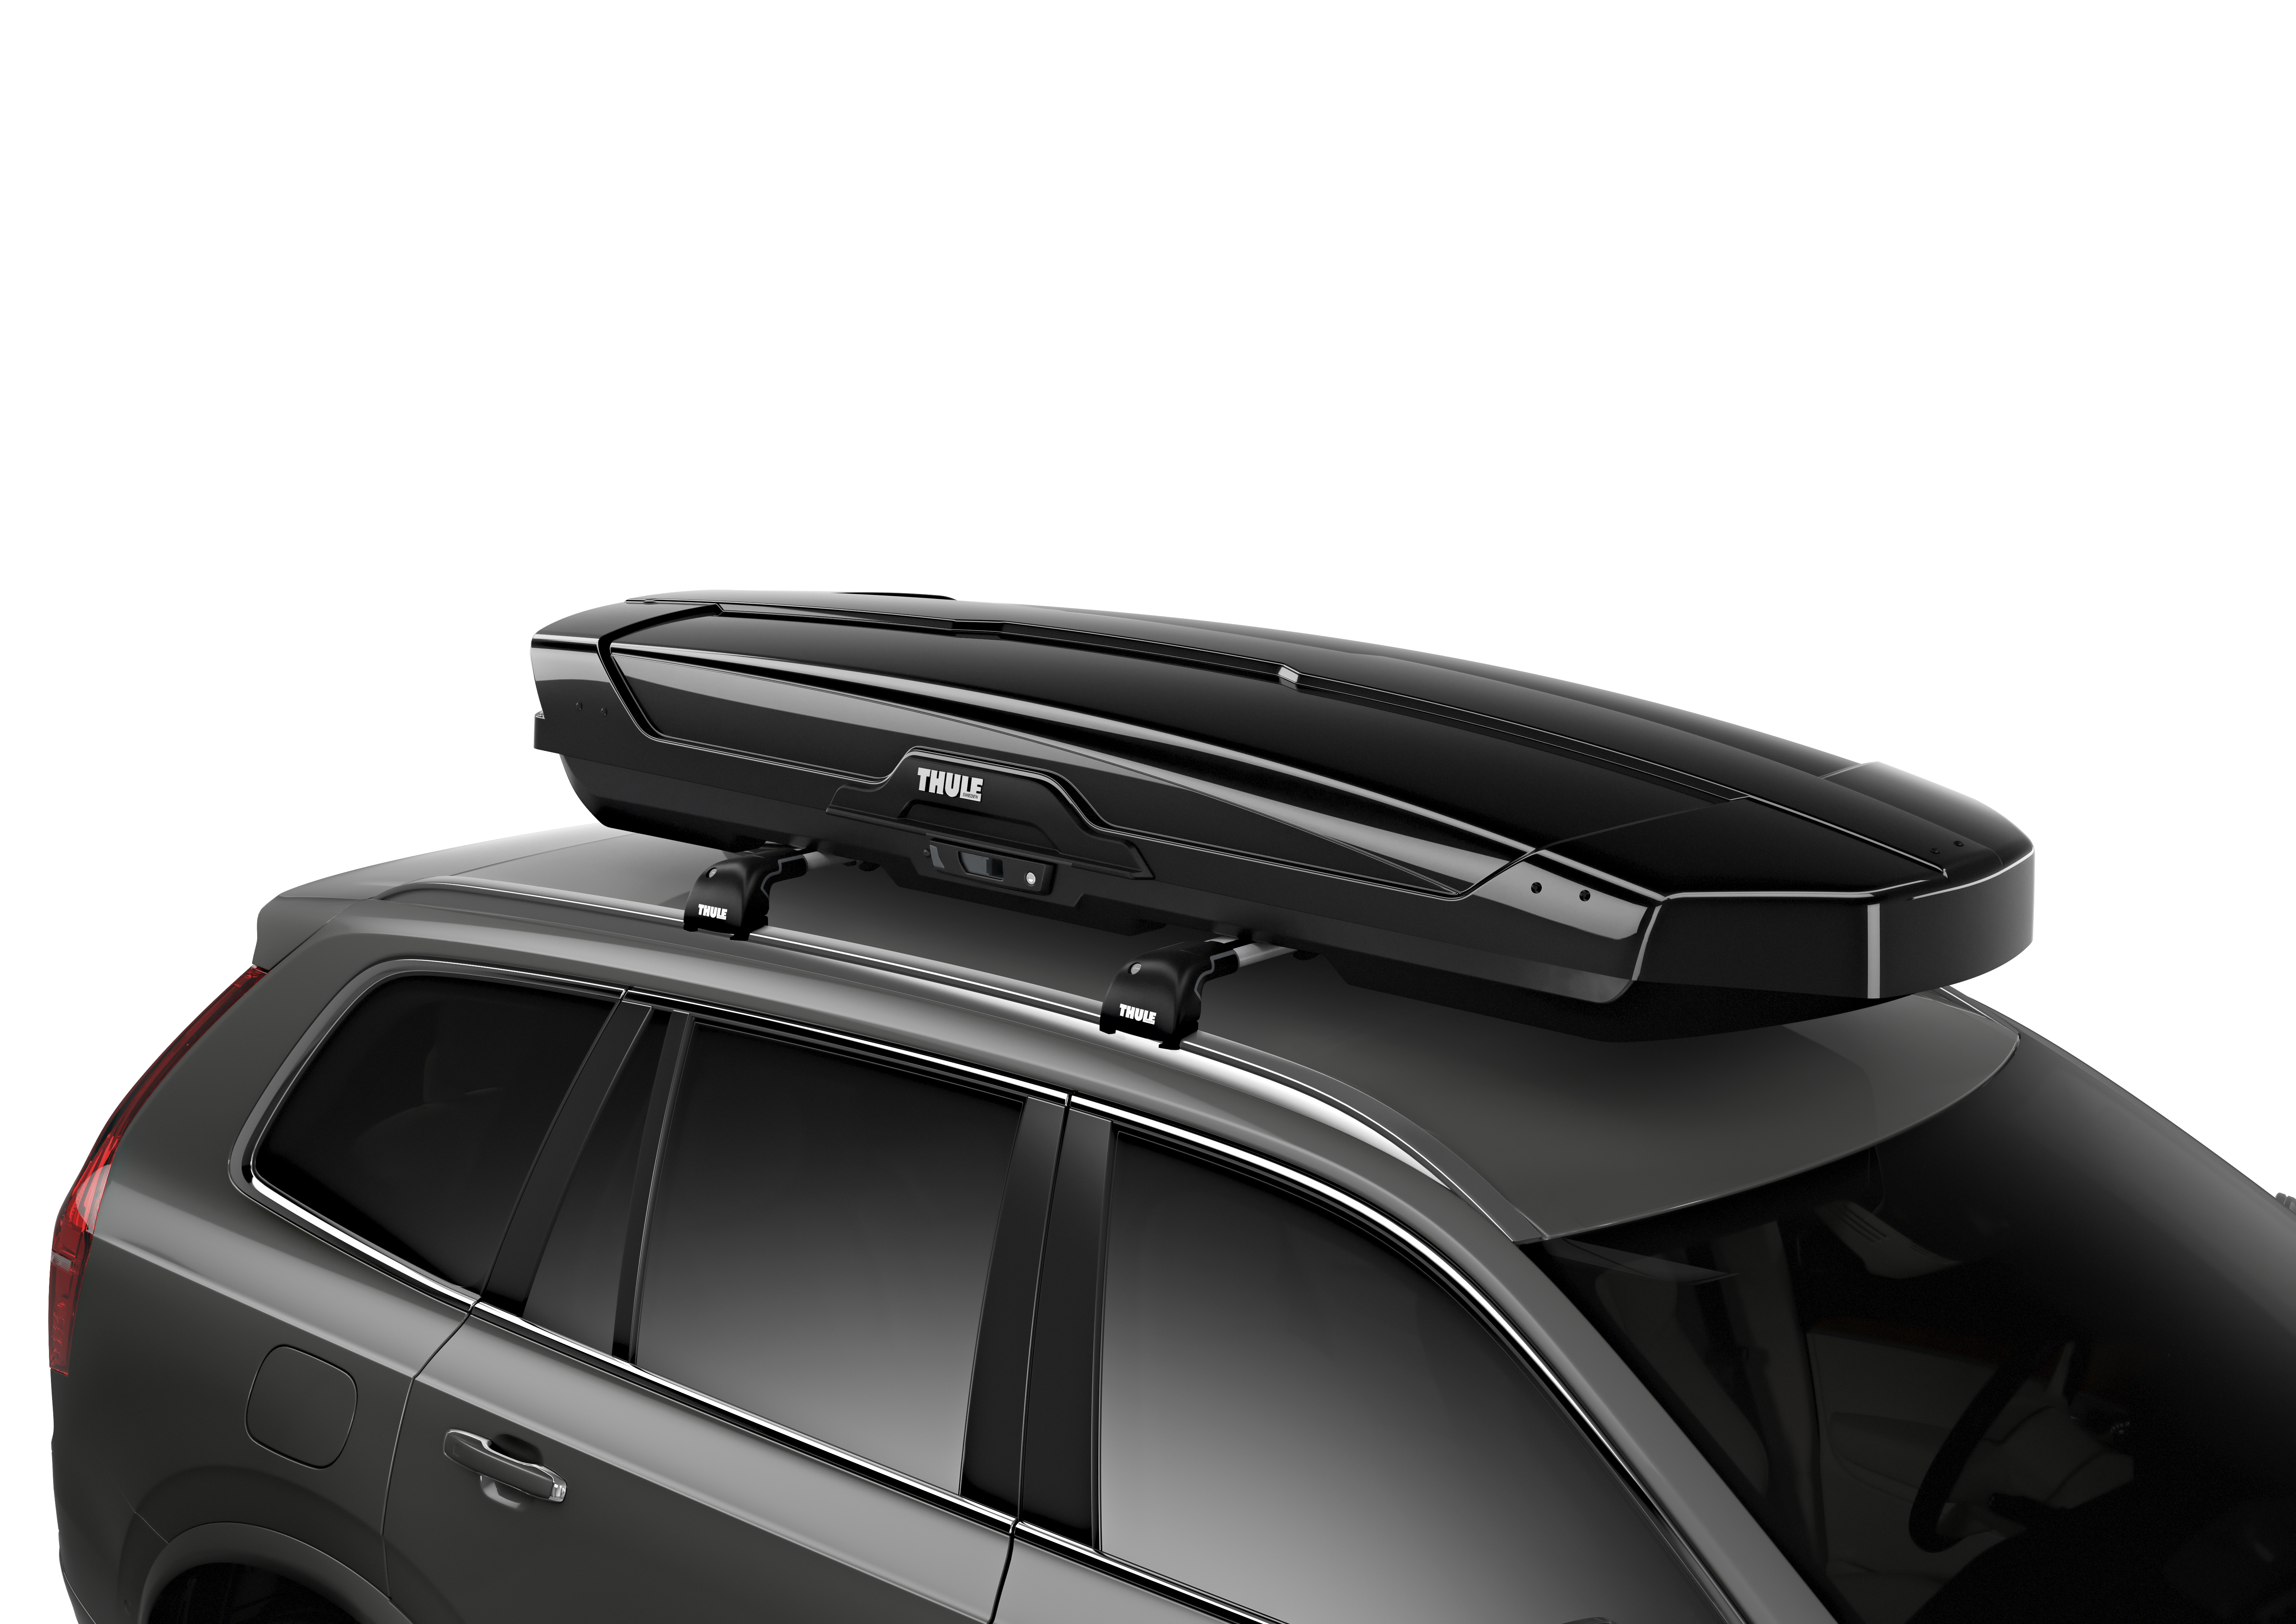 thule motion xt alpine roof box 450 ltr carbox. Black Bedroom Furniture Sets. Home Design Ideas